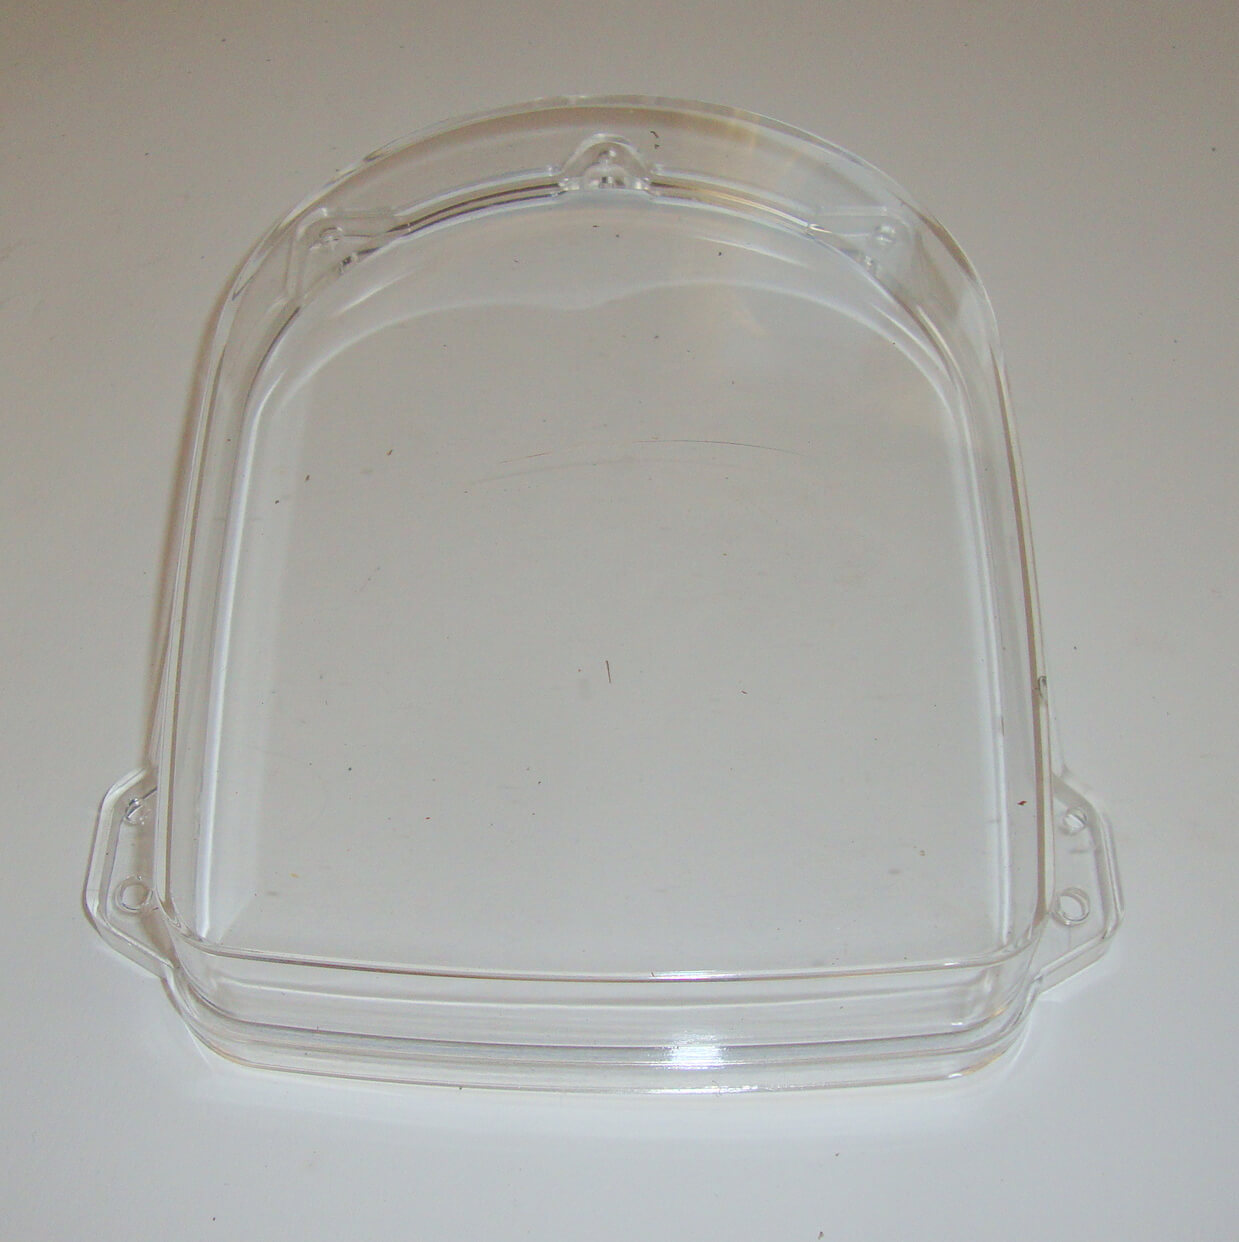 Glass for speedometer, VEGLIA, Vespa 125 / 150 / 200 Cosa, NOS